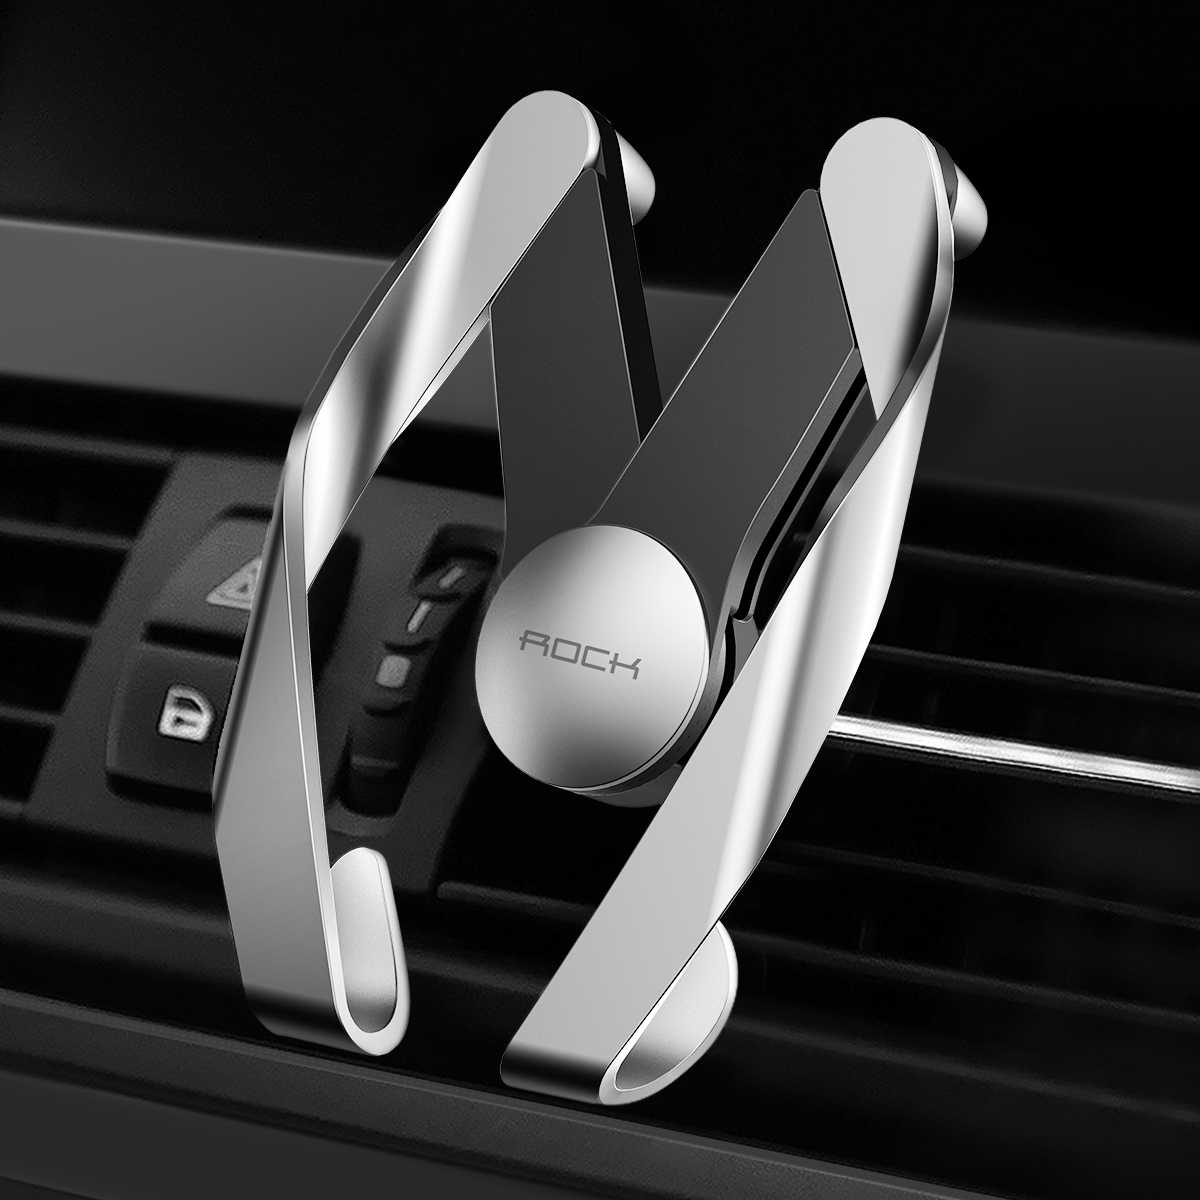 small resolution of rock universal autobot mobile vent phone car holder for iphone samsung car abs material air outlet